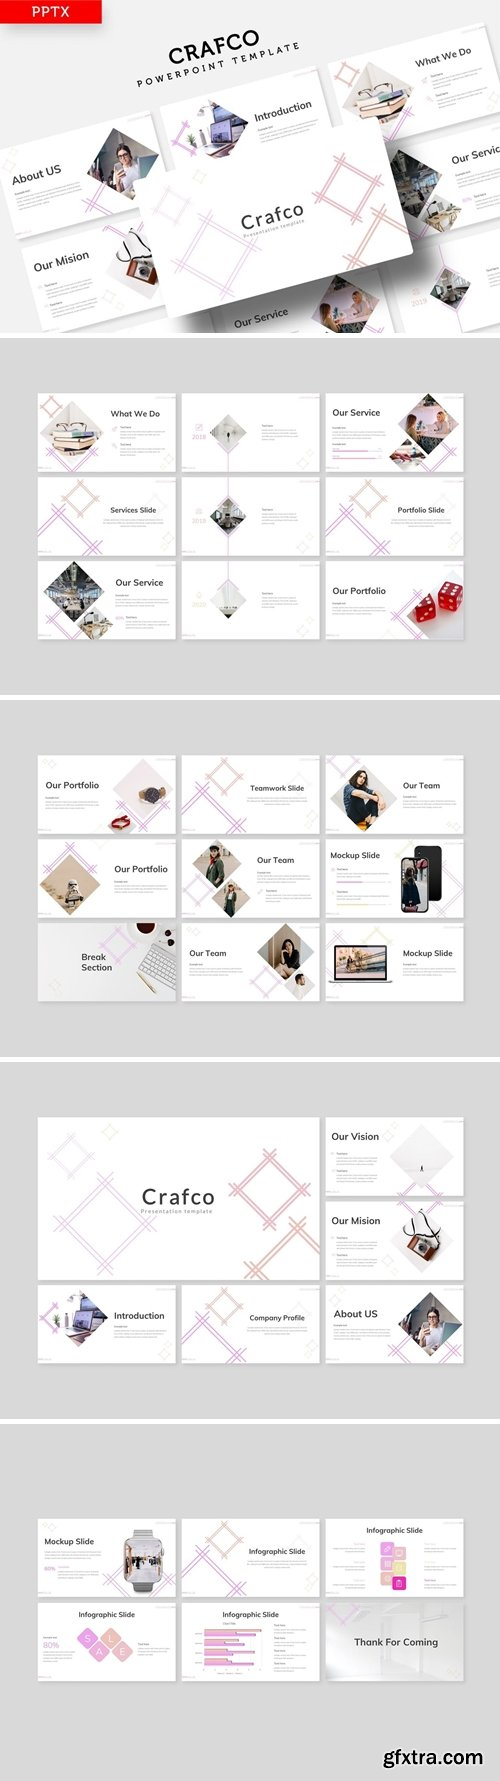 Crafco Powerpoint, Keynote and Google Slides Templates